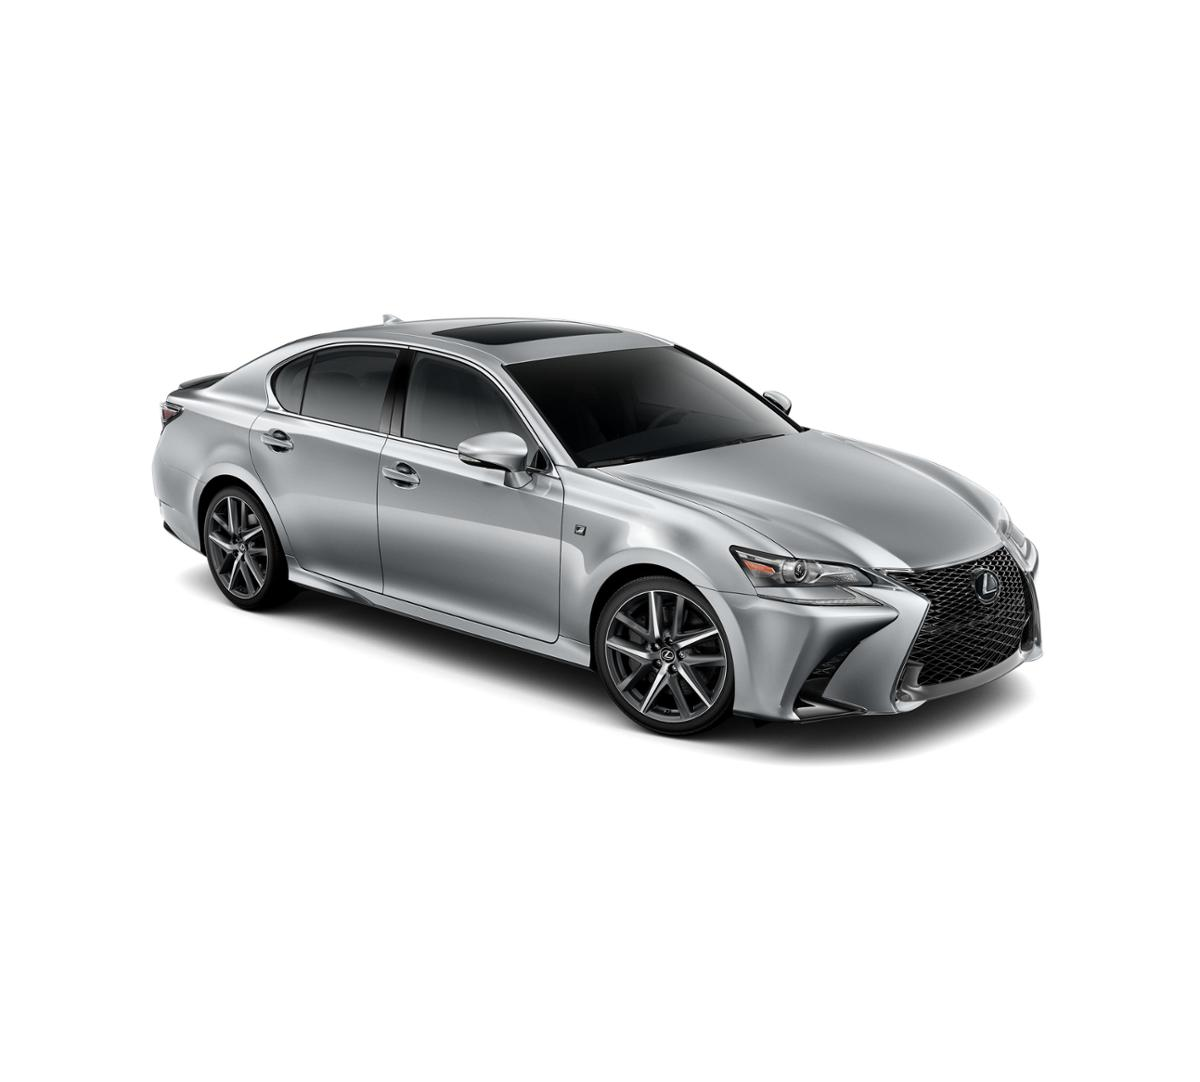 Dallas New 2018 Lexus GS 350 Liquid Platinum: Car For Sale